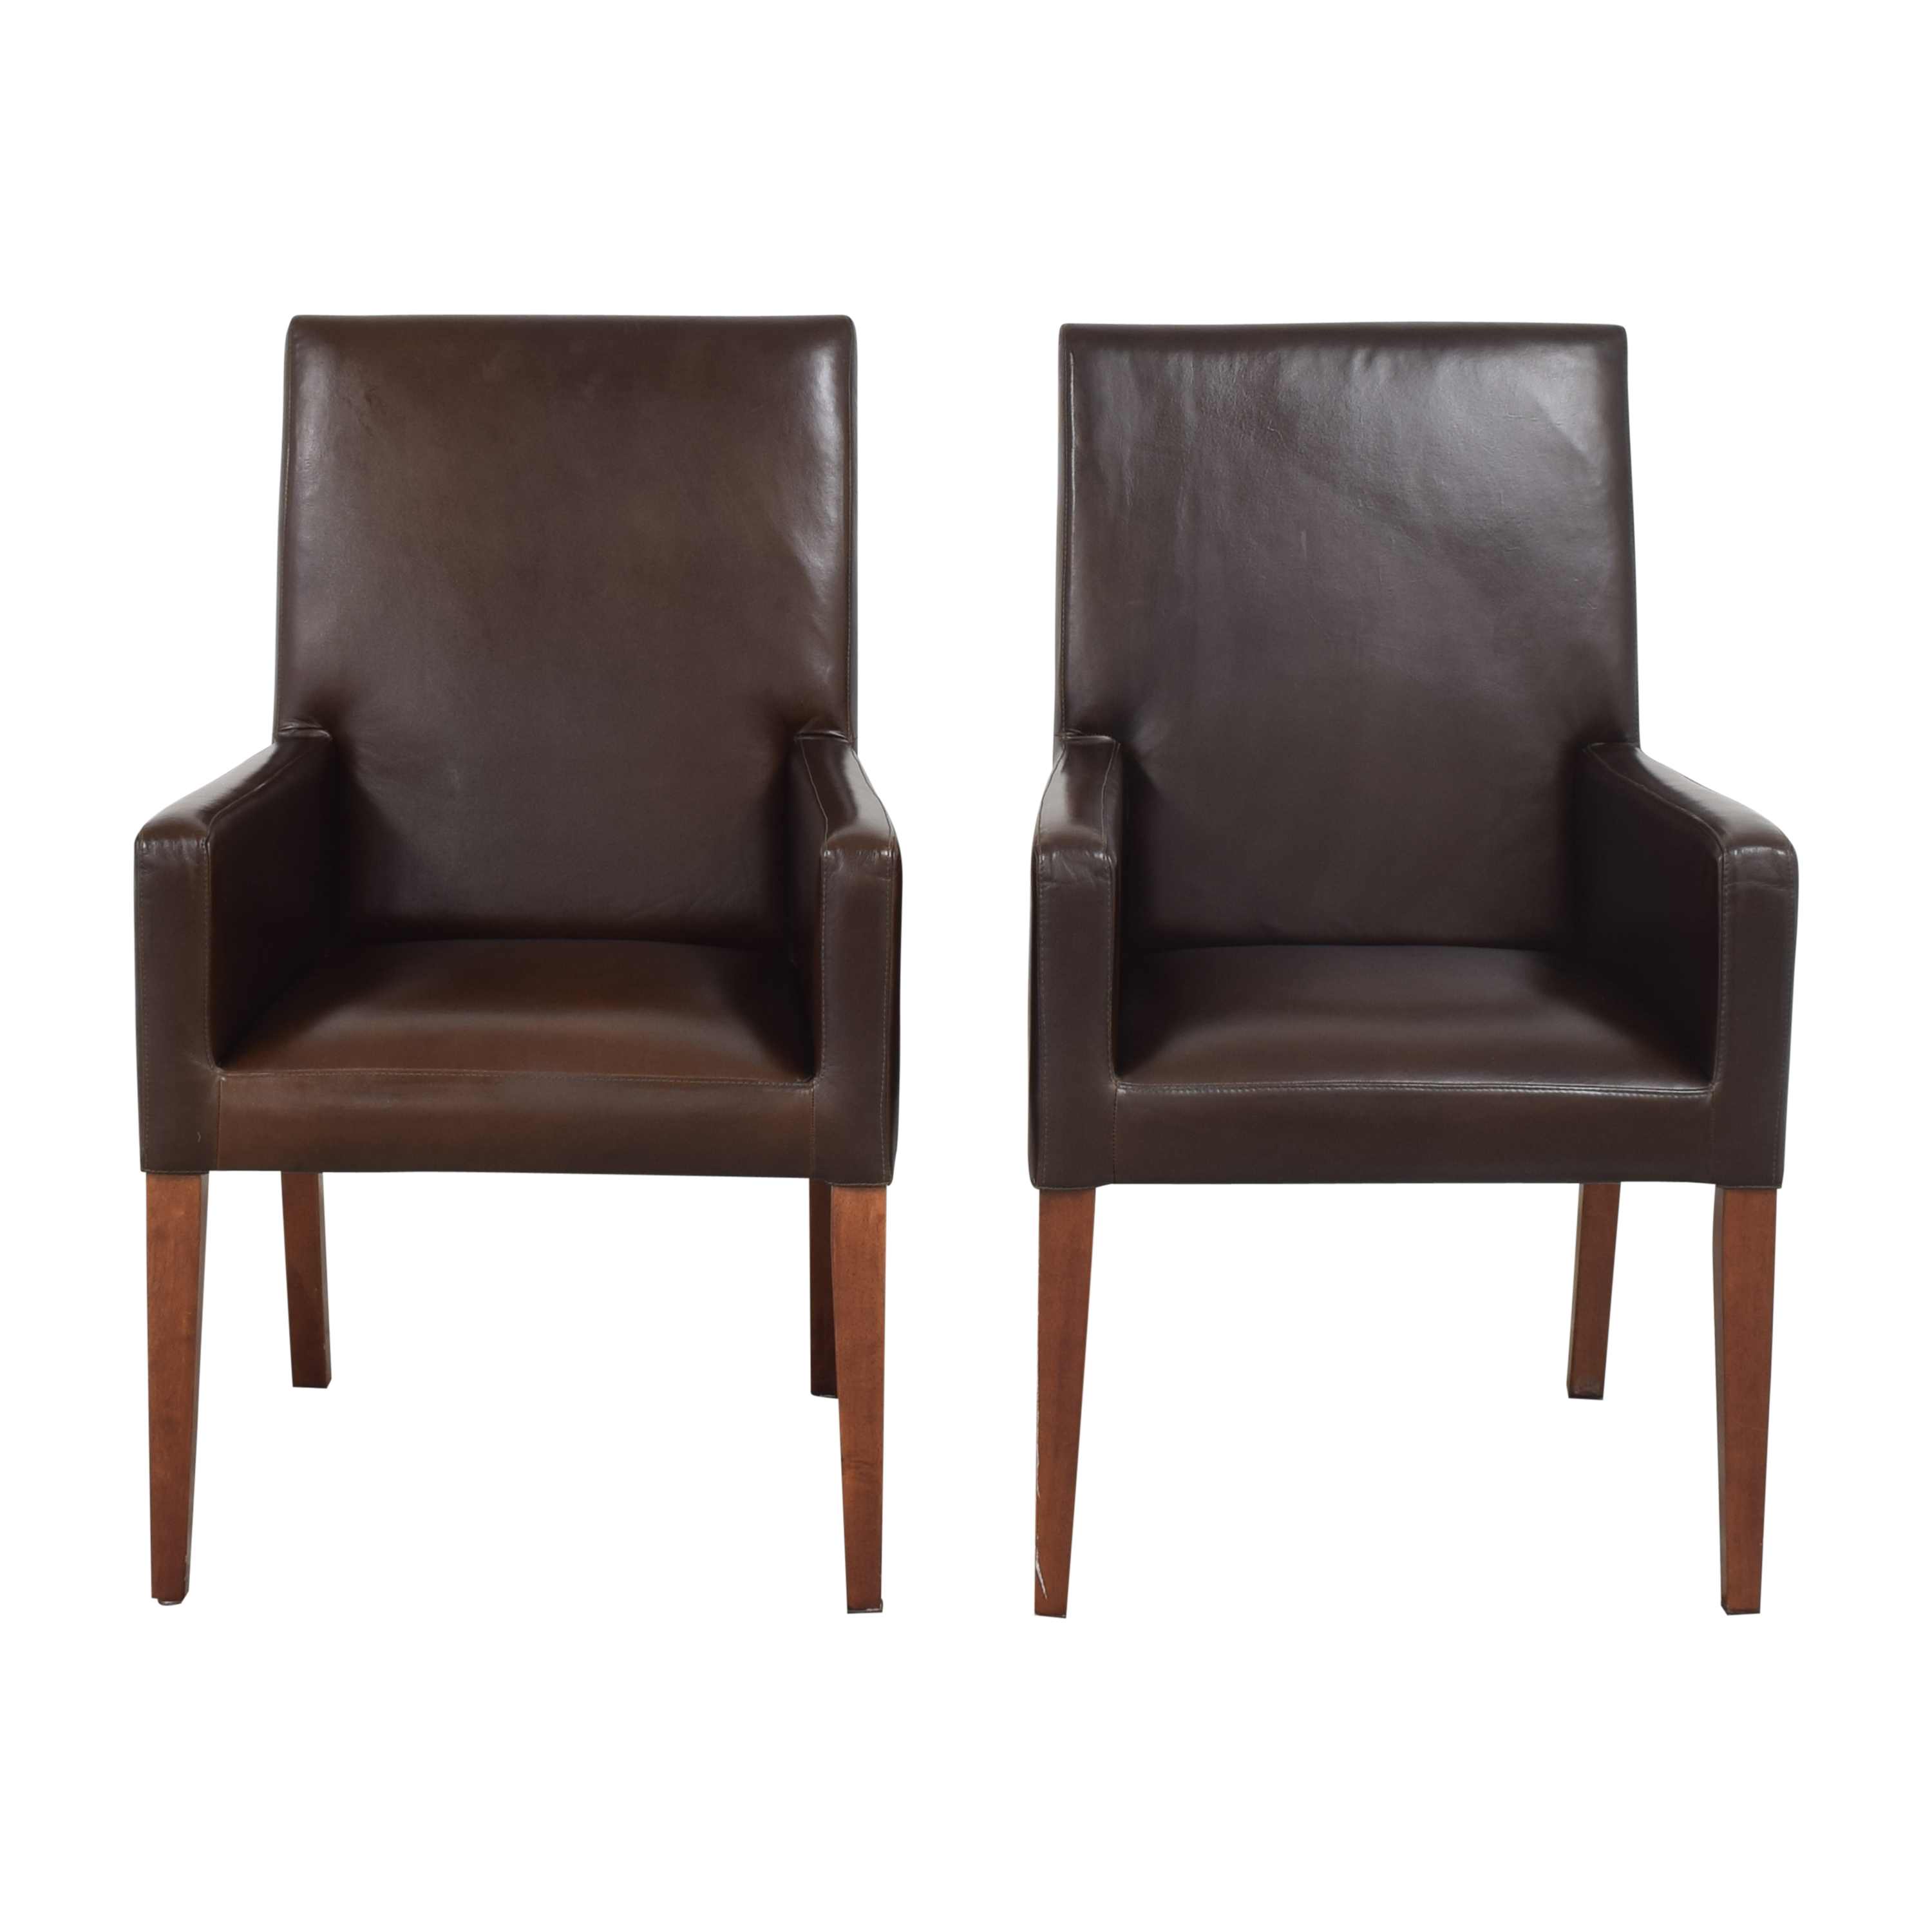 Pottery Barn Pottery Barn Grayson Dining Arm Chairs on sale